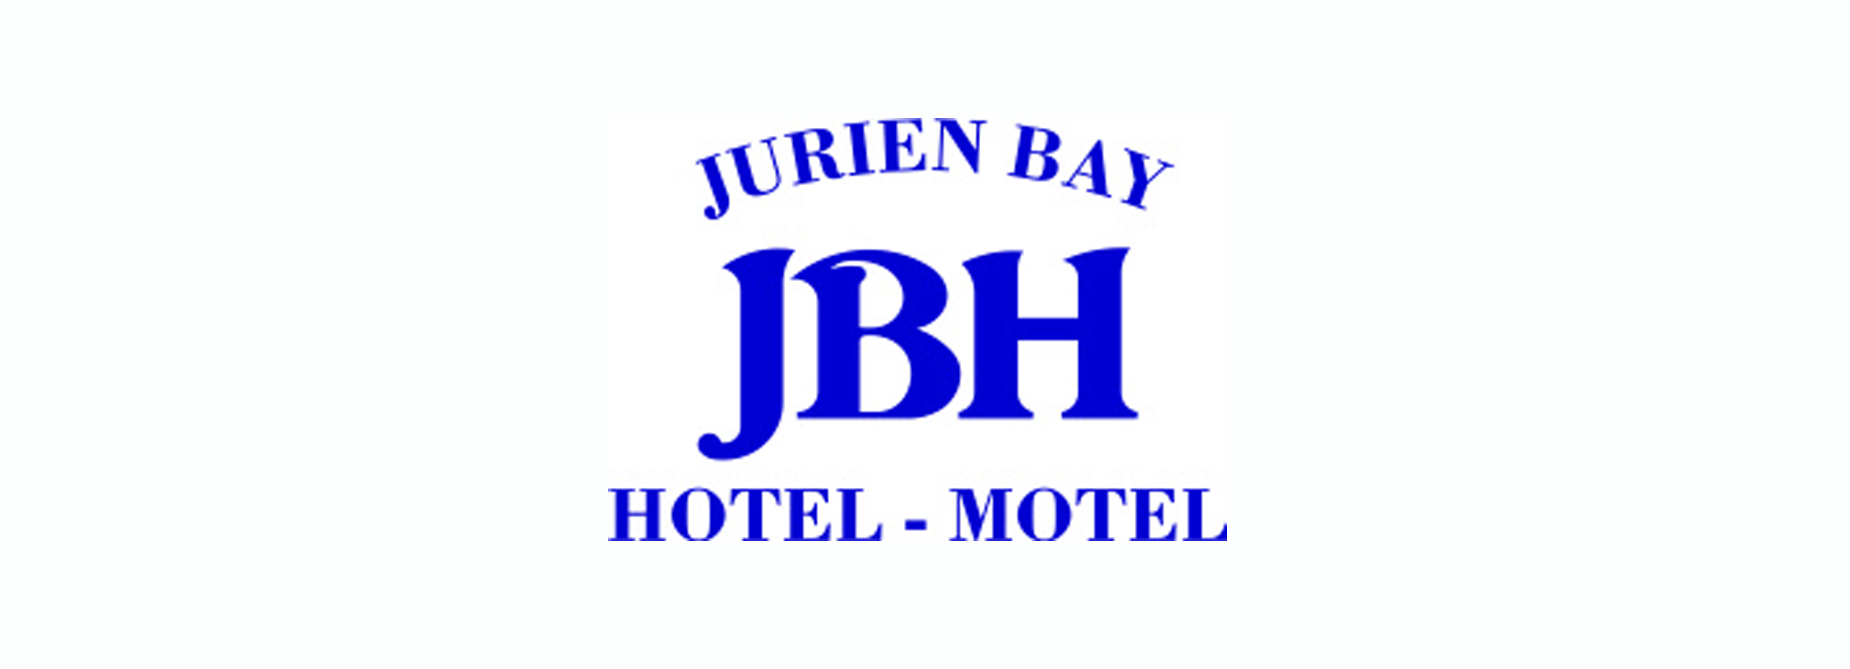 The Jurien Bay Hotel logo